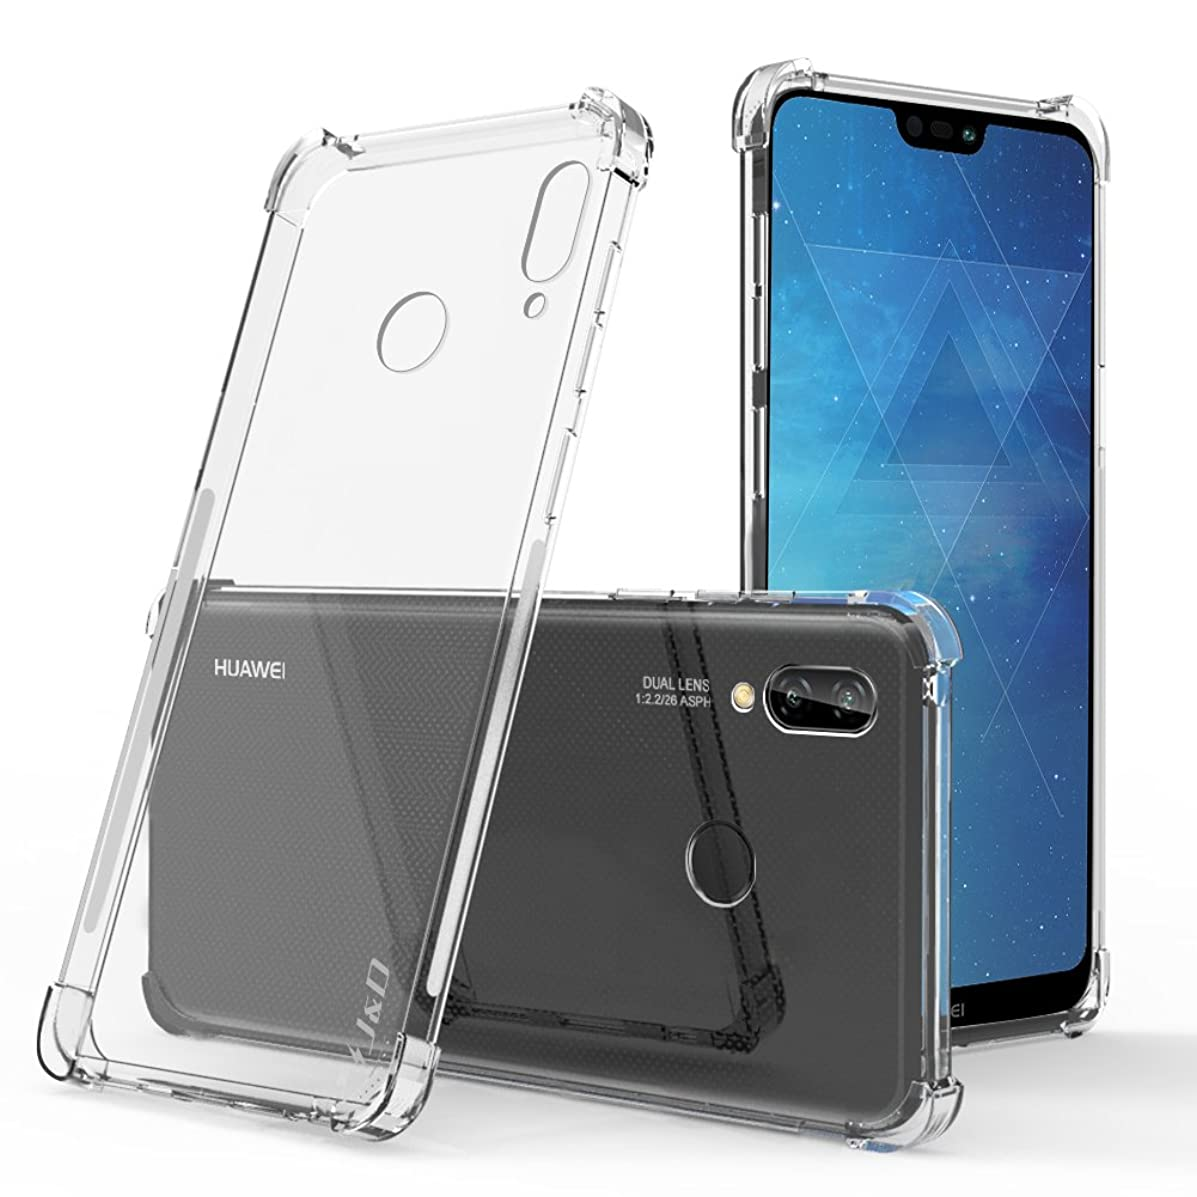 J&D Case Compatible for Huawei P20 Lite Case, [Corner Cushion] [Ultra-Clear] Shock Resistant Protective Slim TPU Bumper Case for Huawei P20 Lite Bumper Case - [NOT for Huawei P20 and Huawei P20 Pro]